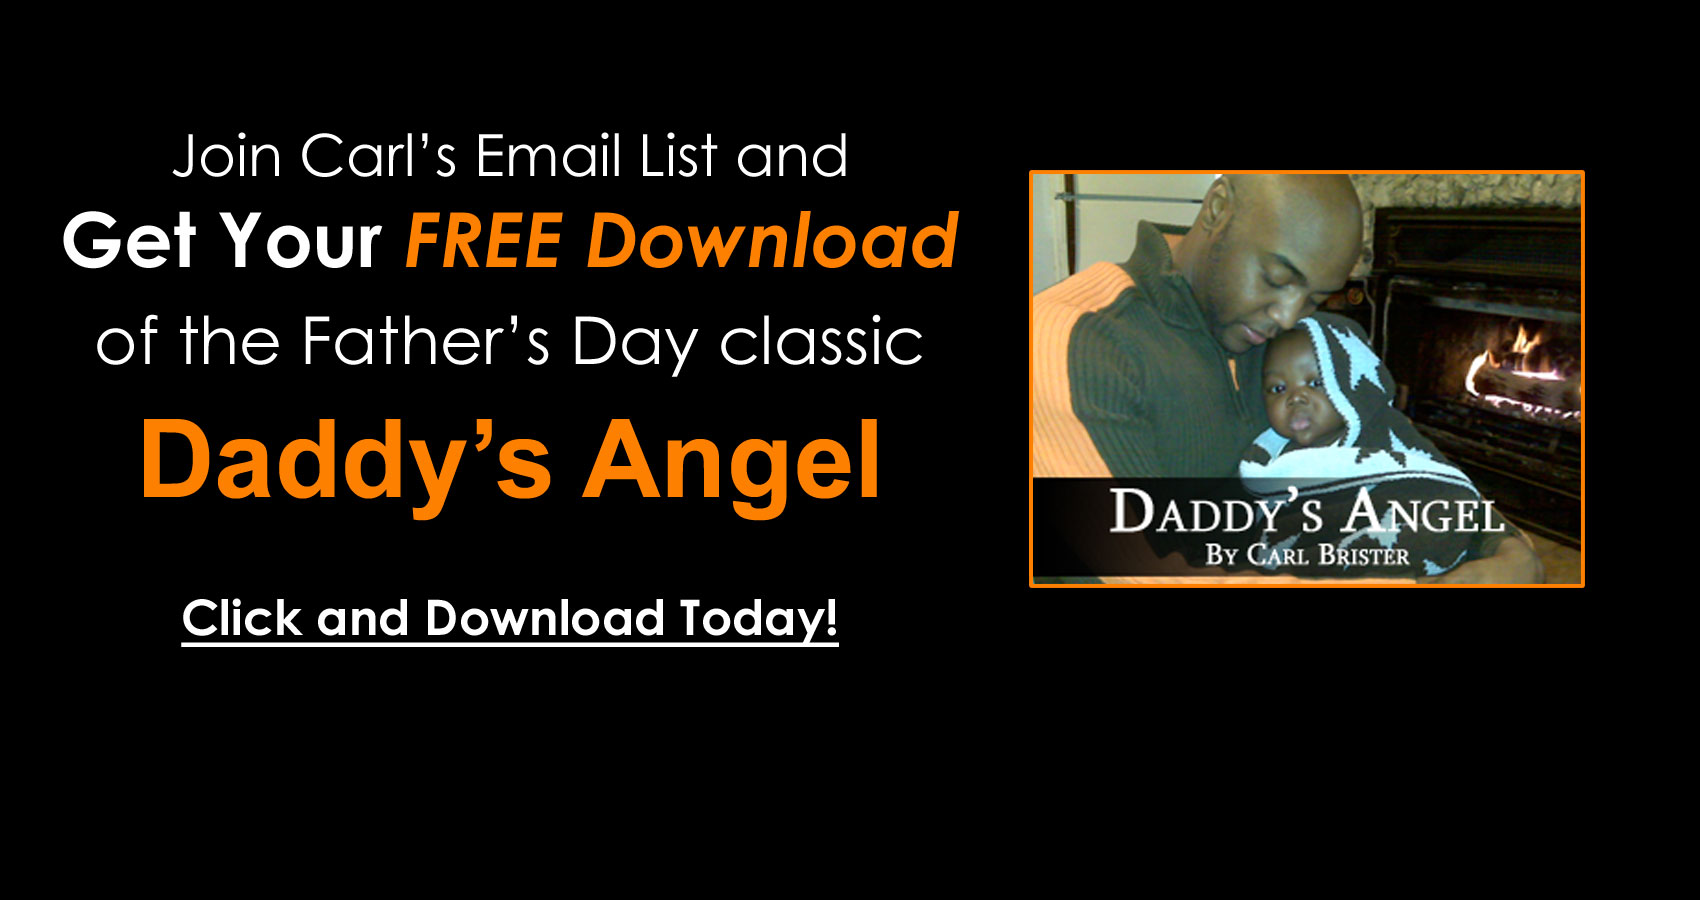 Join Carl's Email List and Get Your FREE DOWNLOAD!